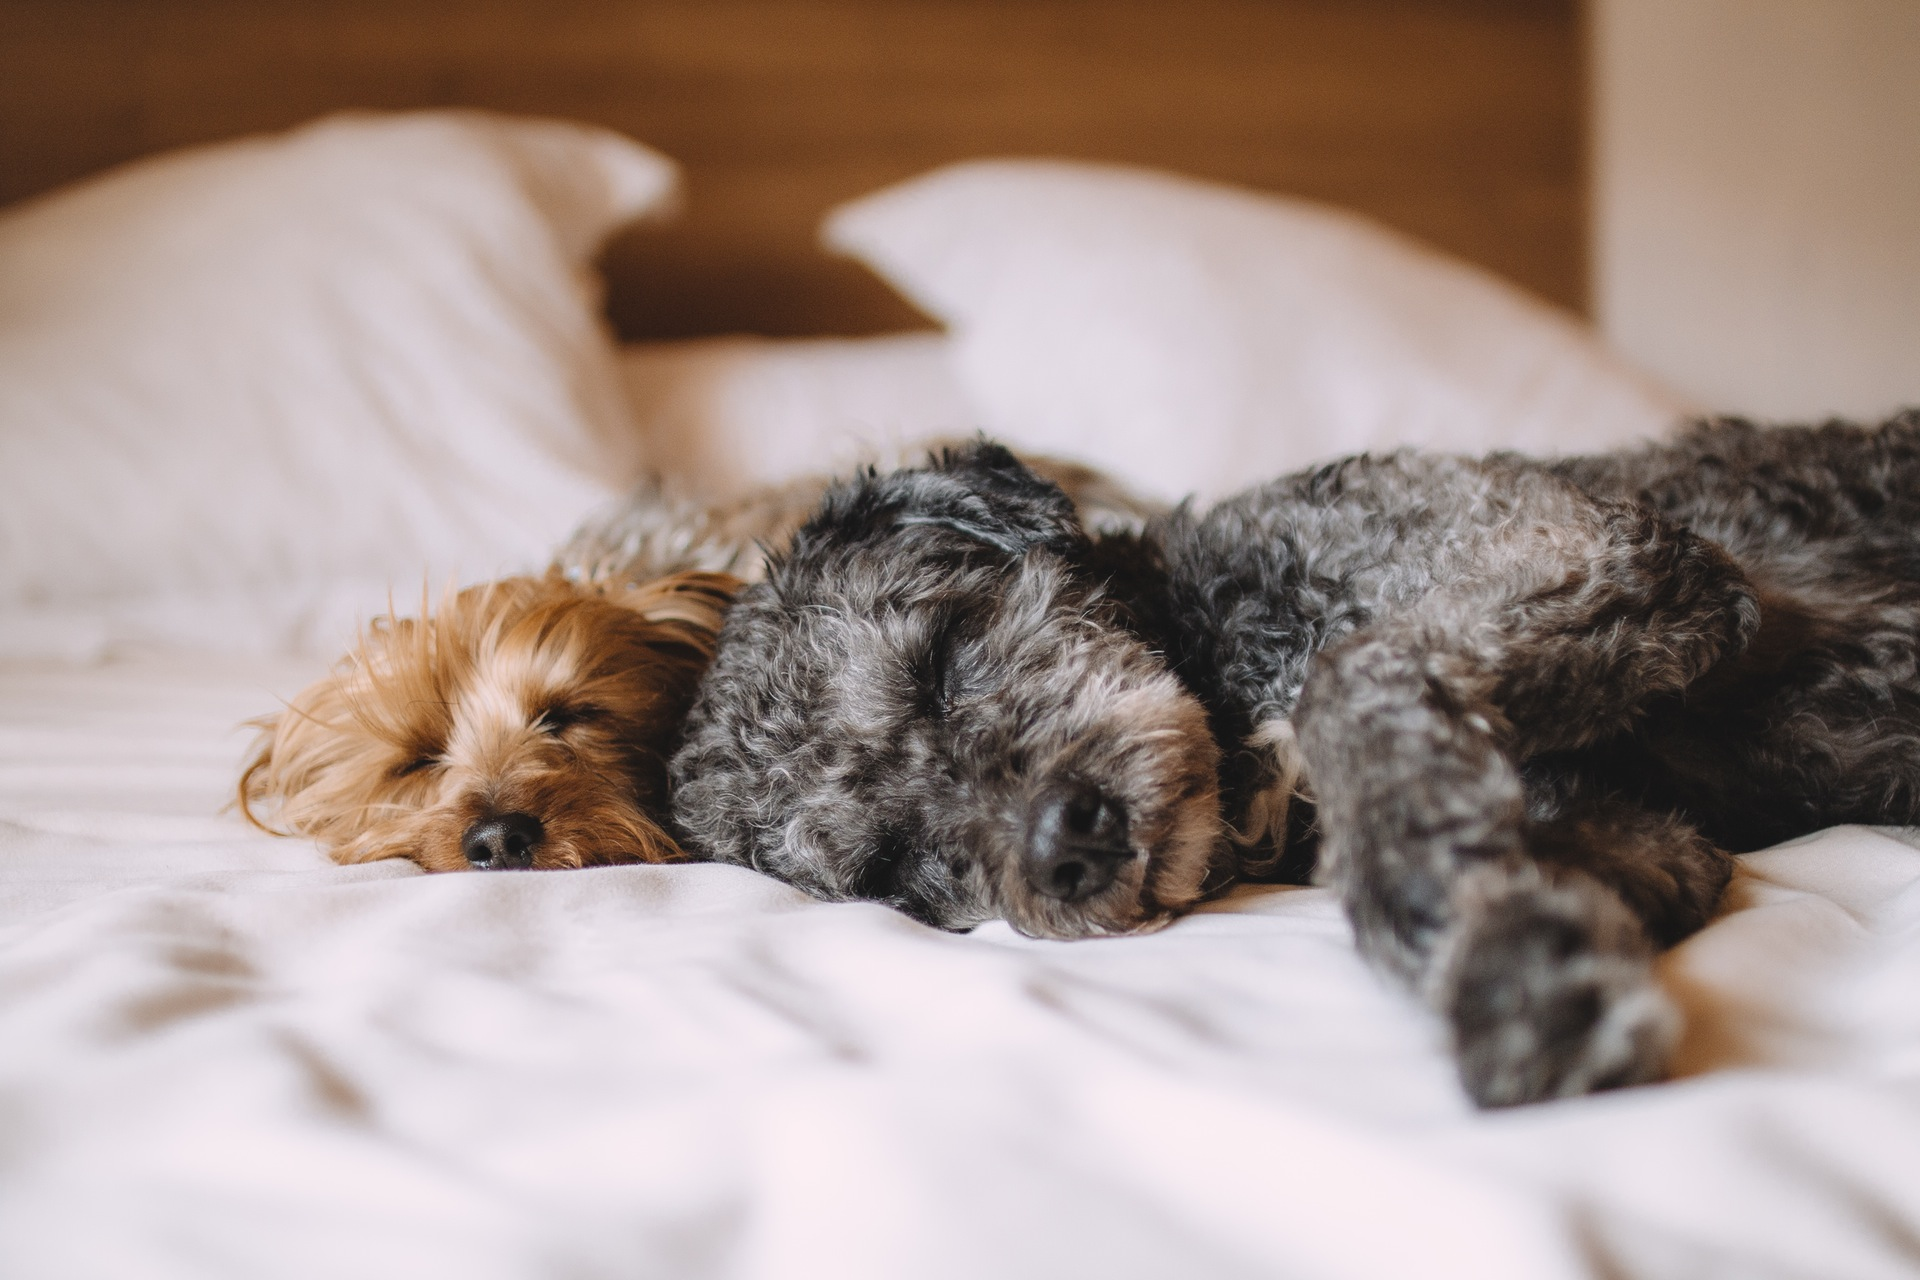 dog-in-bed-pexels-photo-57627